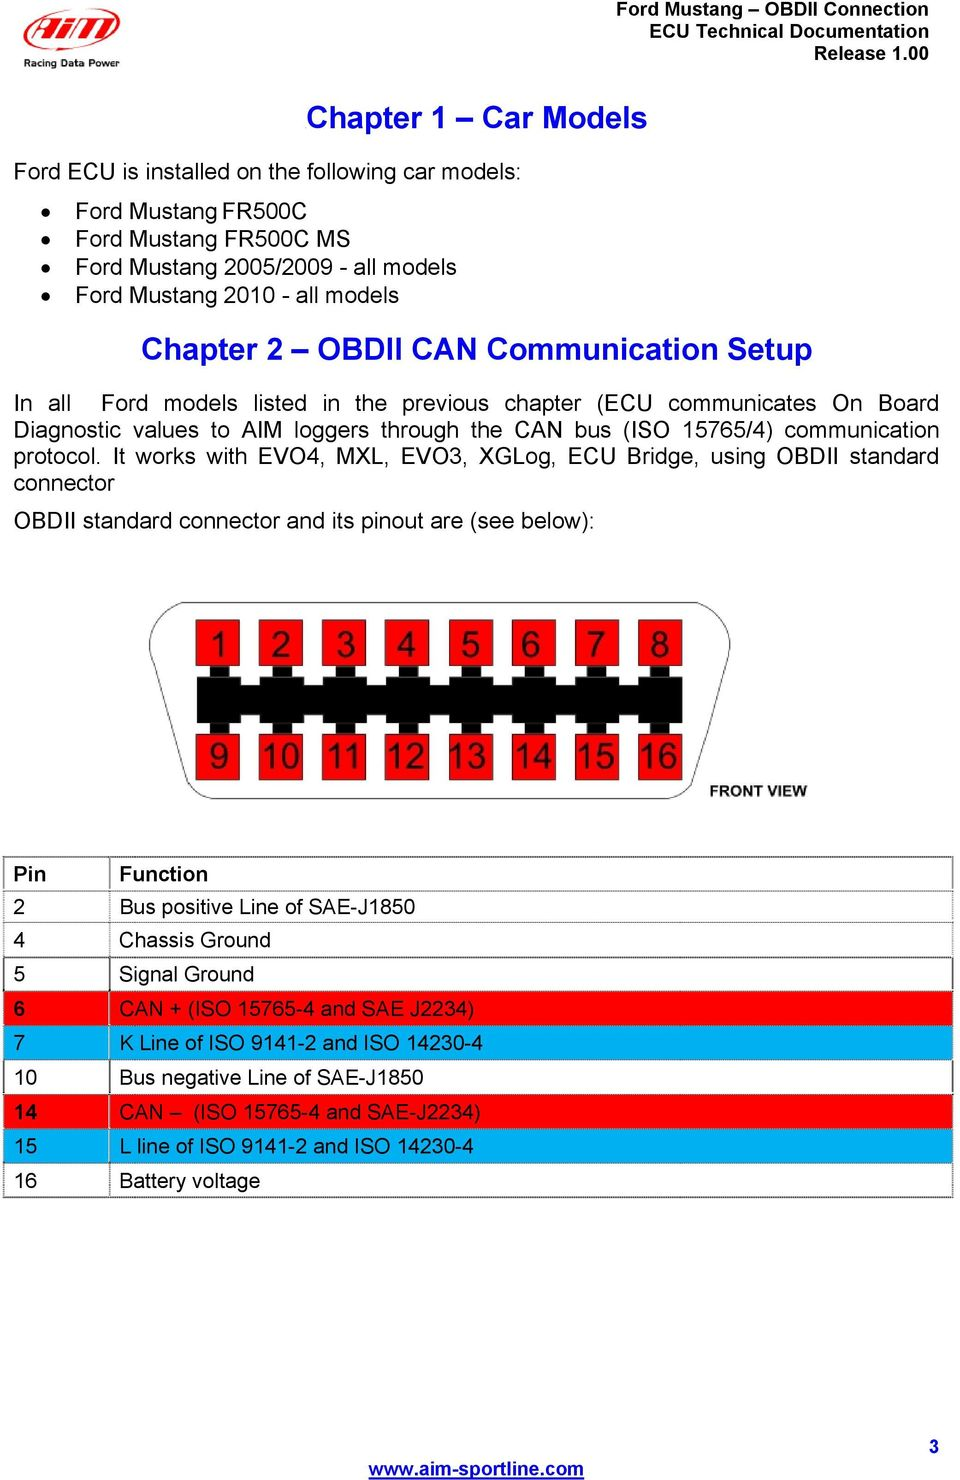 Ford Mustang Via Obdii Connection Pdf Obd Ii Wiring Diagram It Works With Evo4 Mxl Evo3 Xglog Ecu Bridge Using